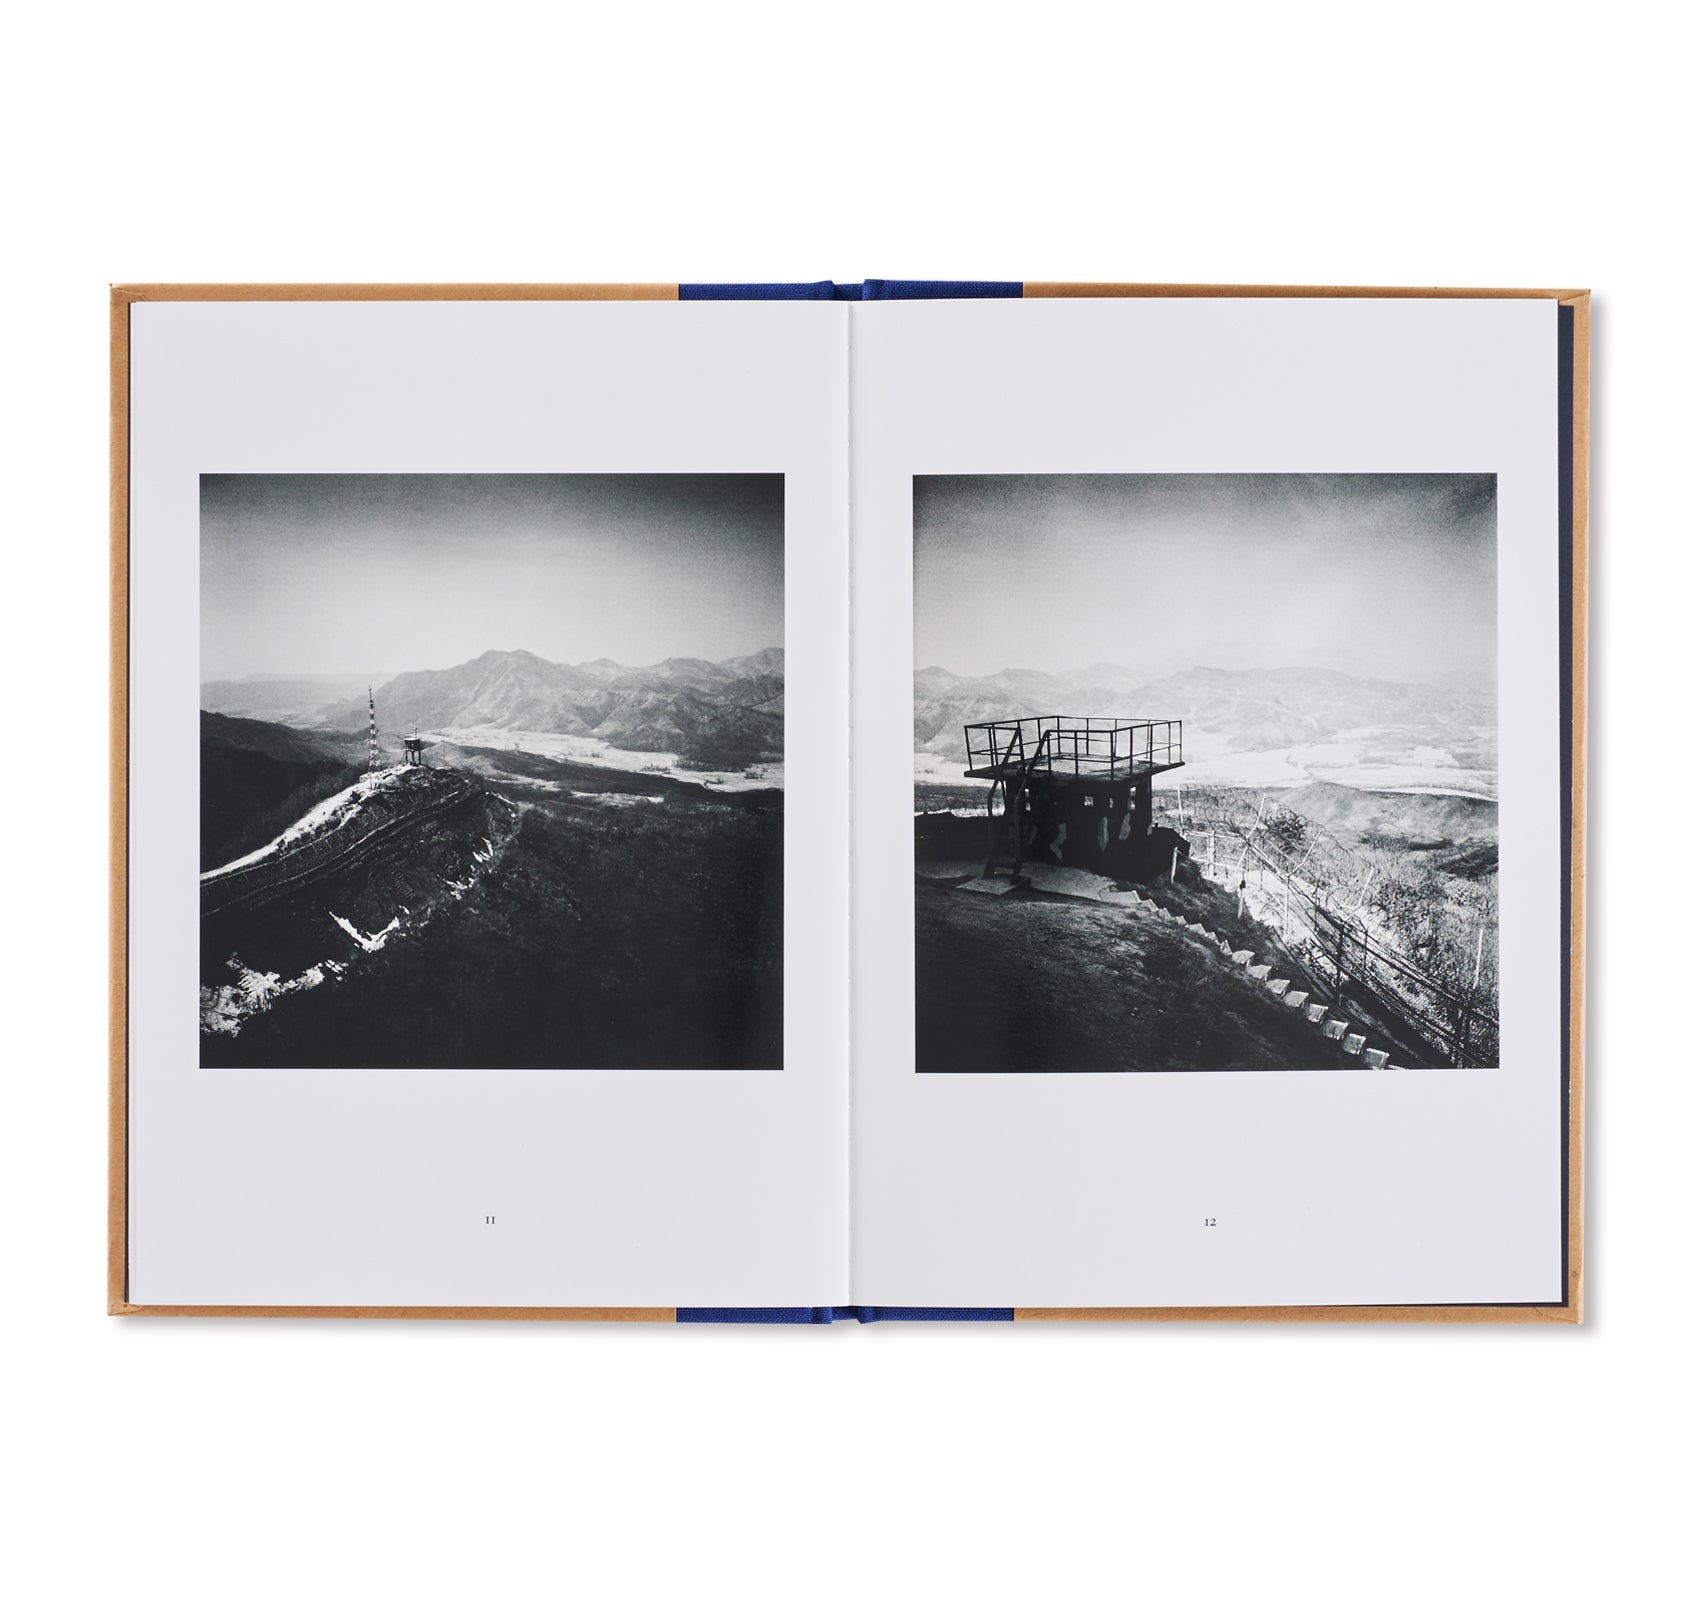 ONE PICTURE BOOK TWO #1: DMZ - THE 38TH PARALLEL by Michael Kenna